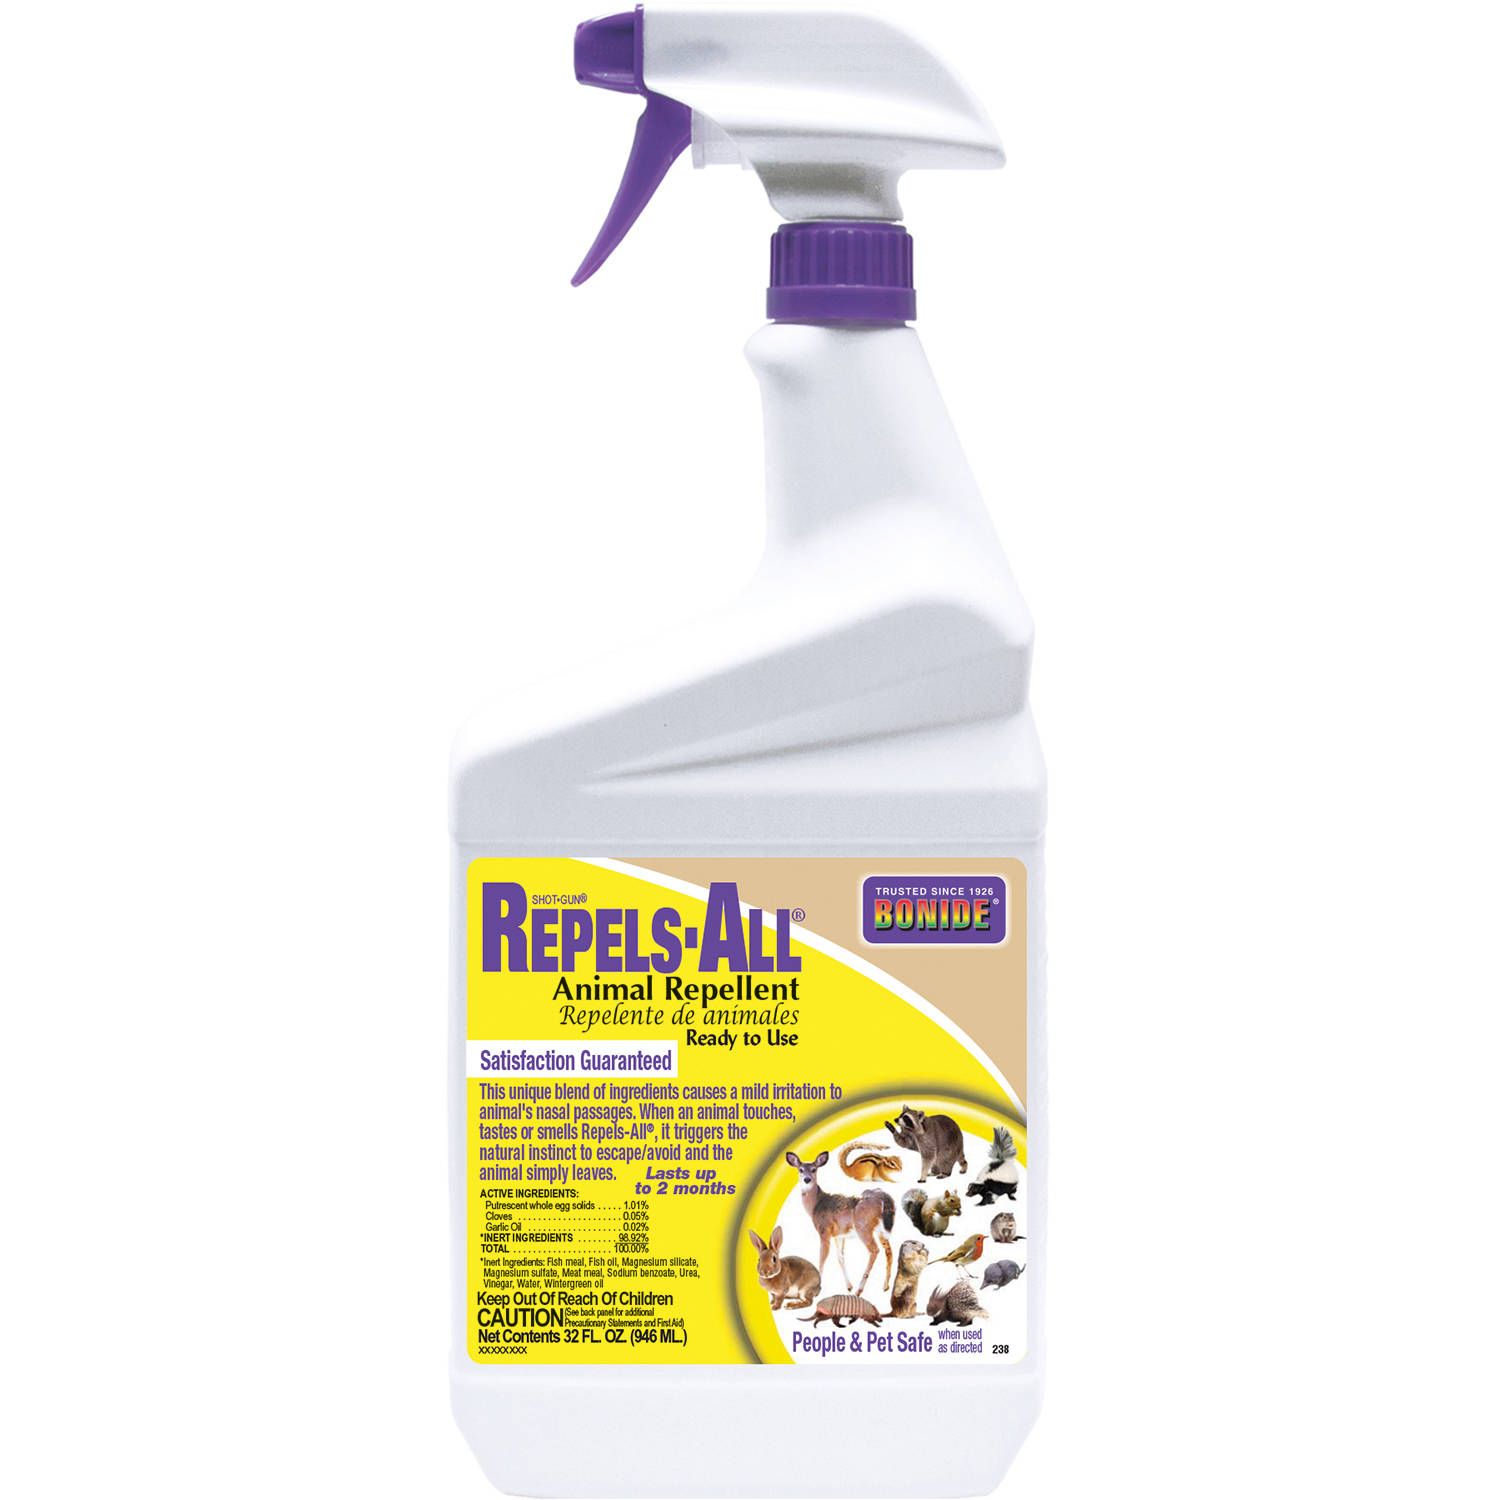 Image of BONIDE Animal Repellent, All Natural Repels-All, Qt-RTU Spray